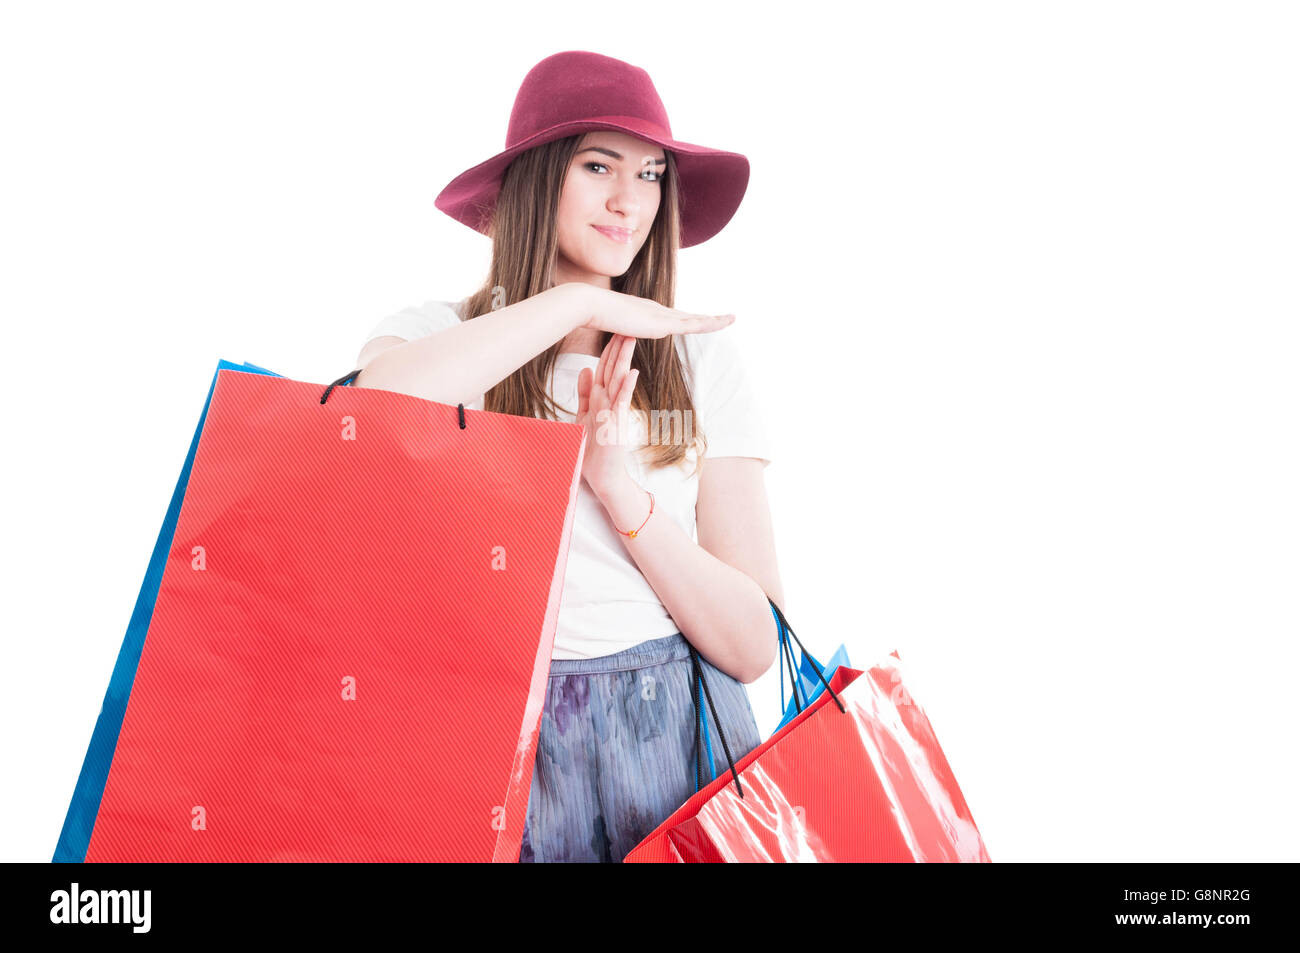 Smiling beautiful woman doing a pause or time out gesture at shopping isolated on white with advertising area - Stock Image